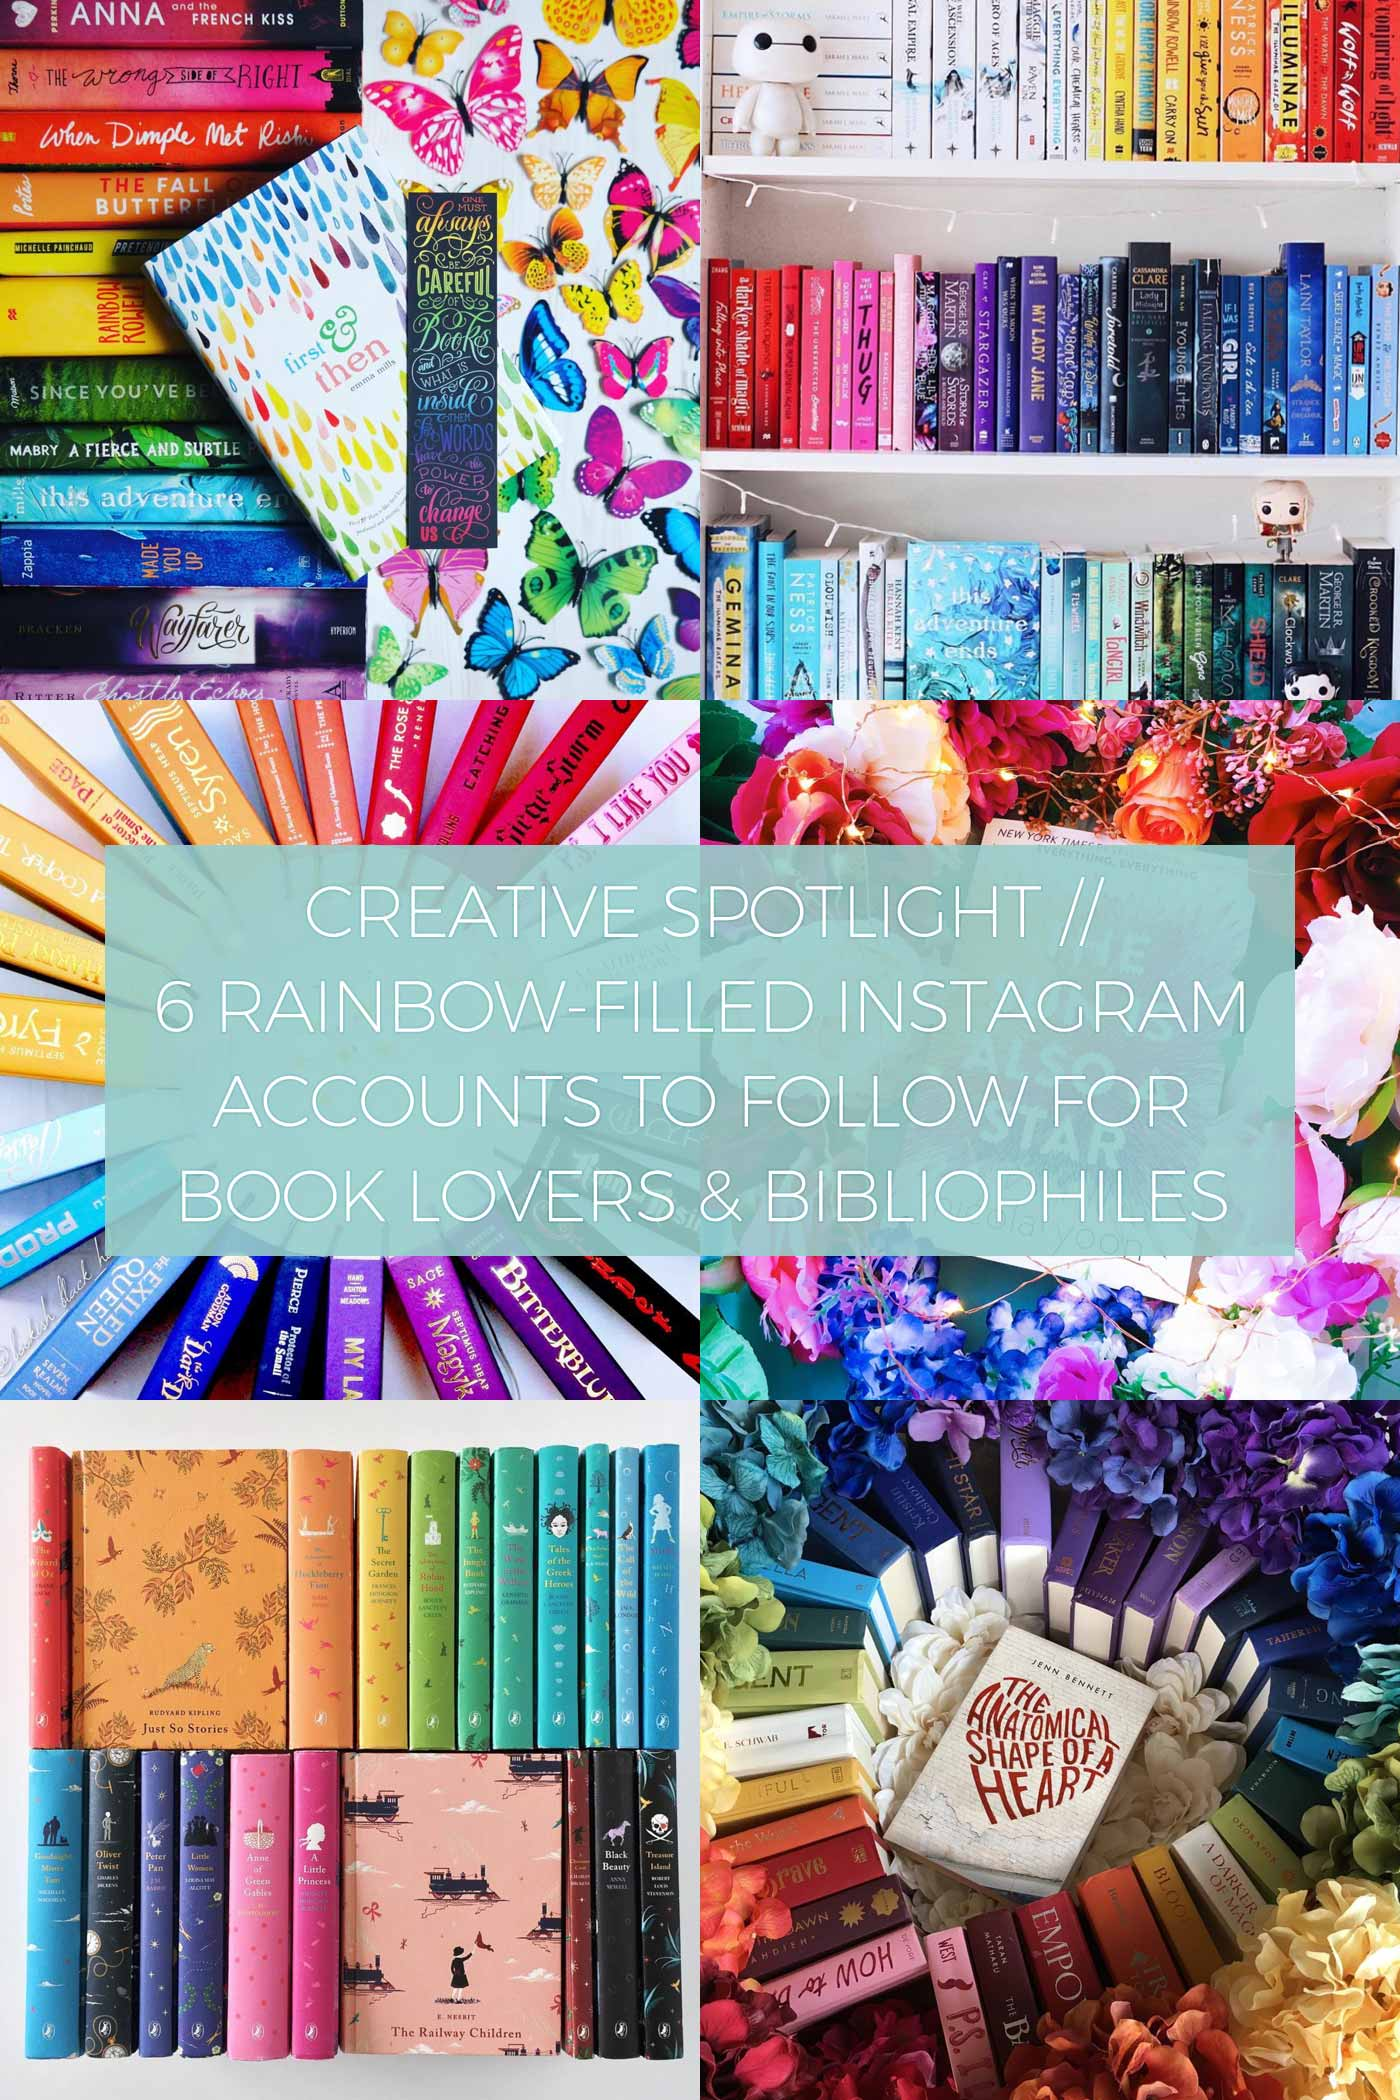 6 Rainbow-Filled Instagram Accounts to Follow for Book Lovers and Bibliophiles // Creative Spotlight